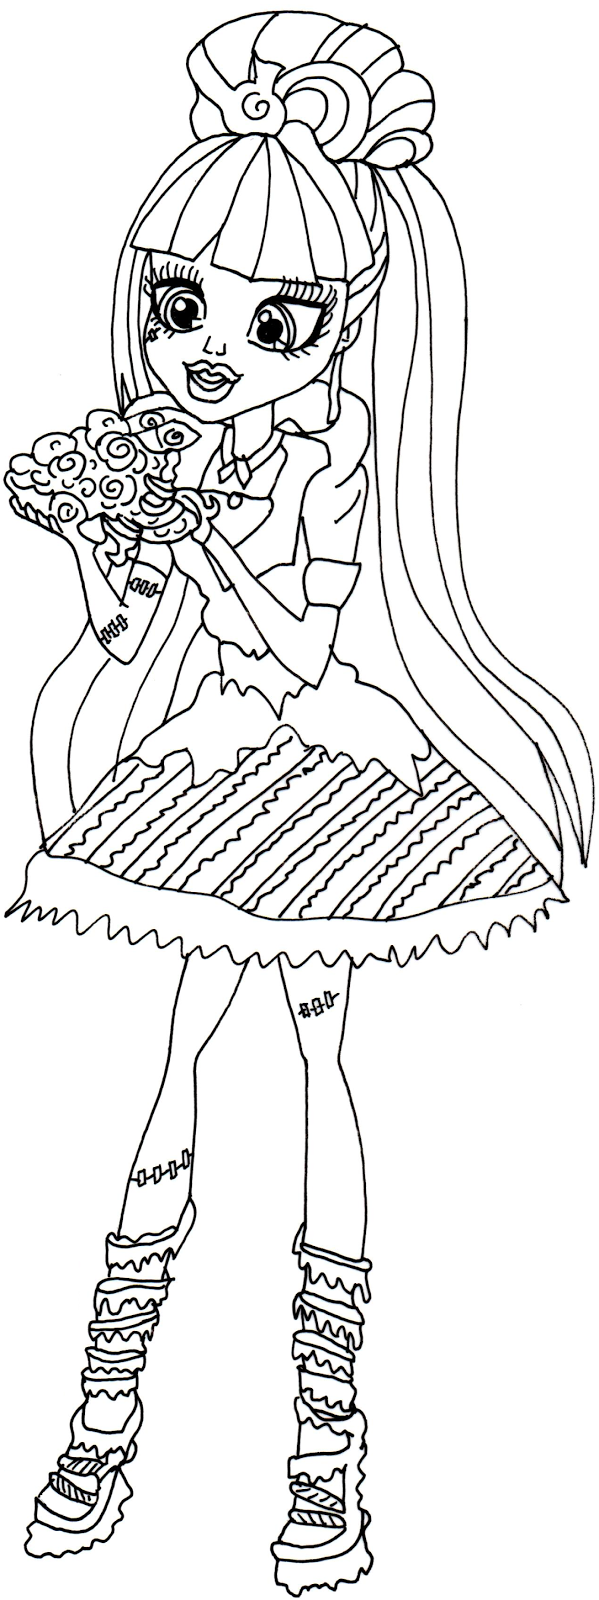 Free Printable Monster High Frankie Stein Sweet Screams Coloring Page